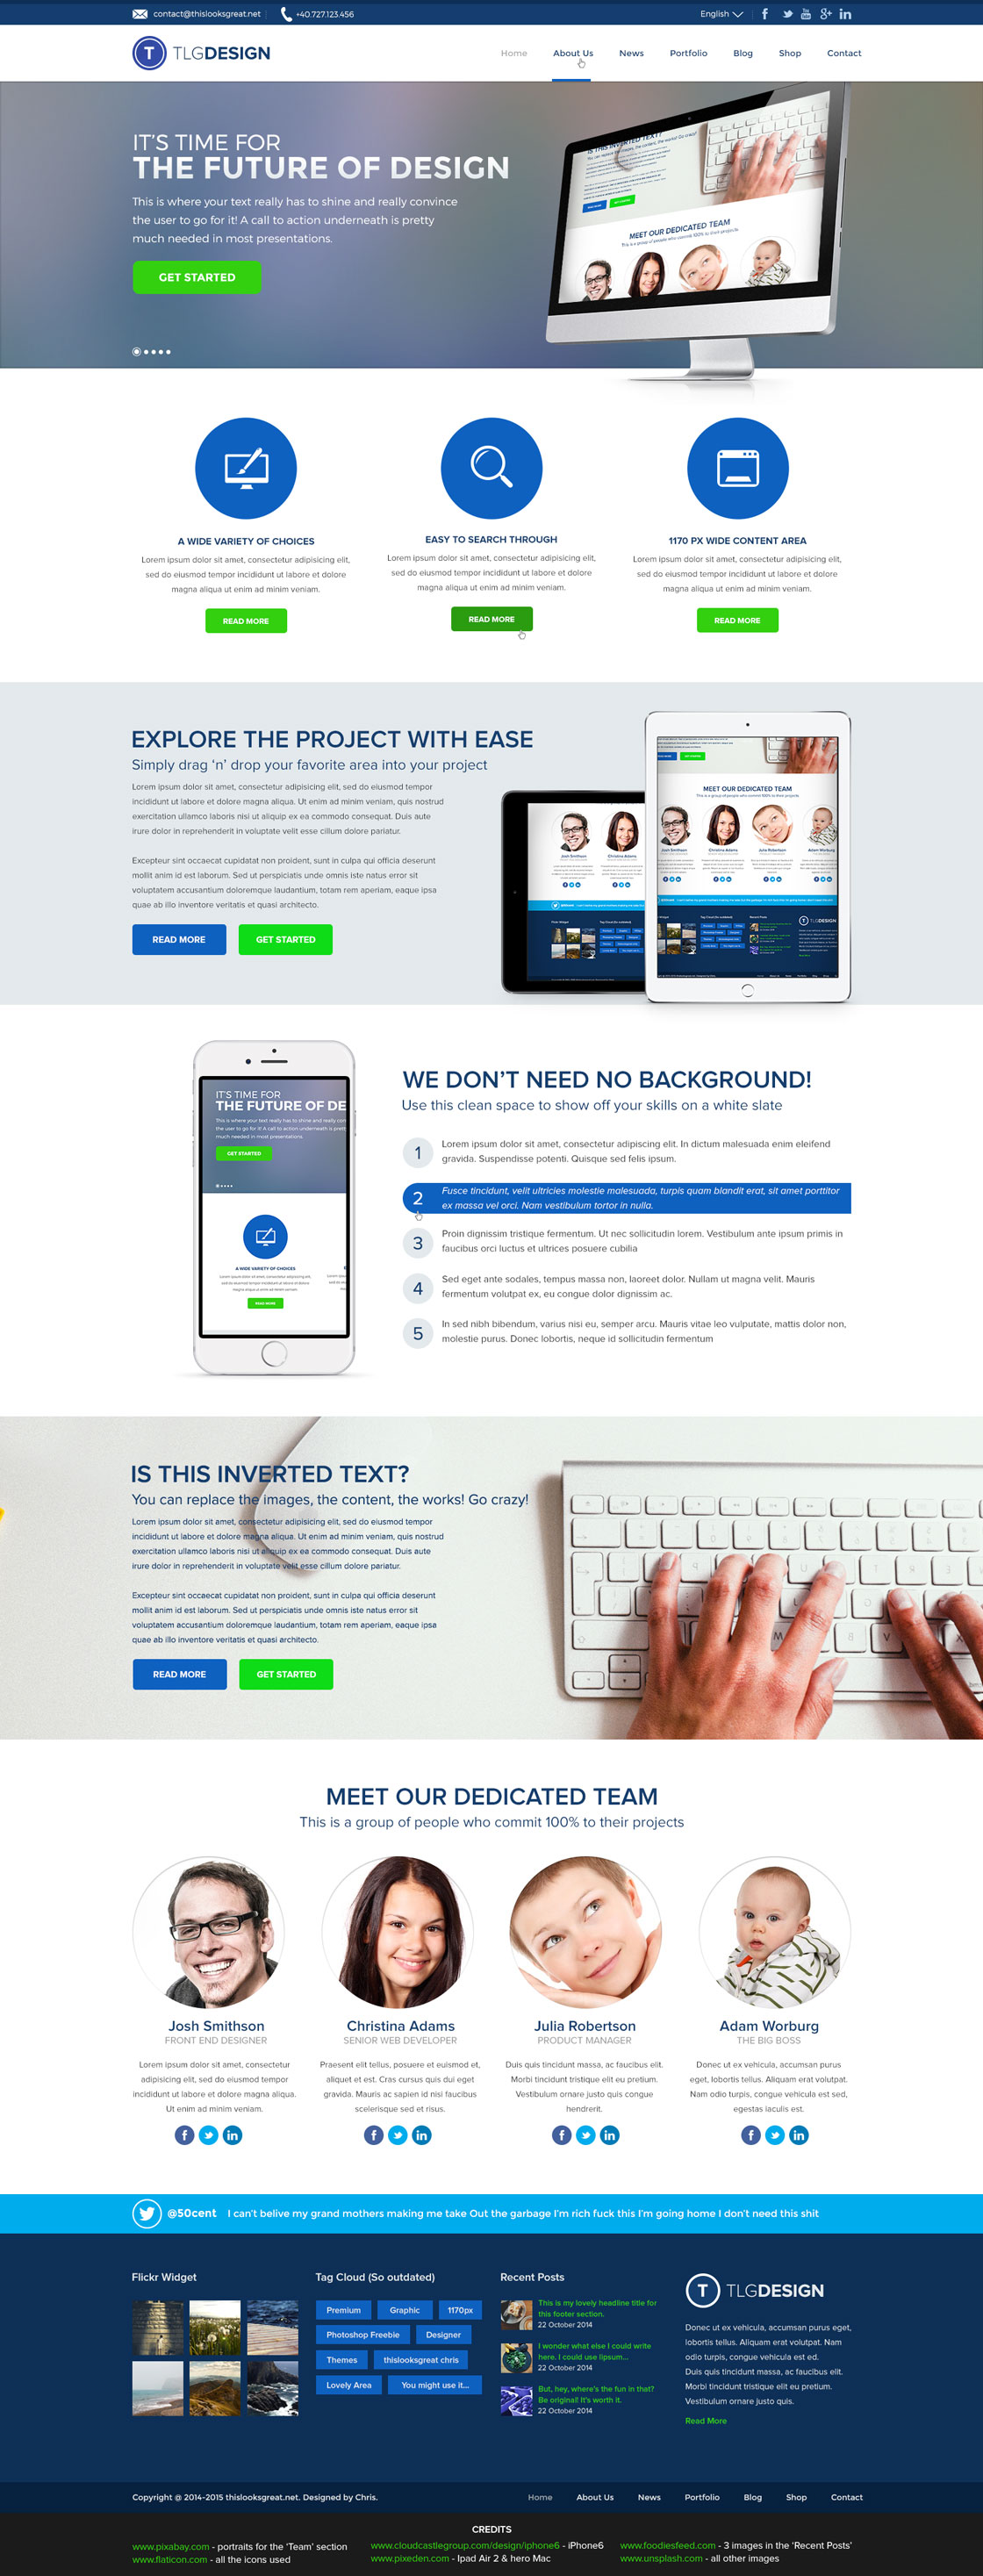 Design Agency Homepage Layout